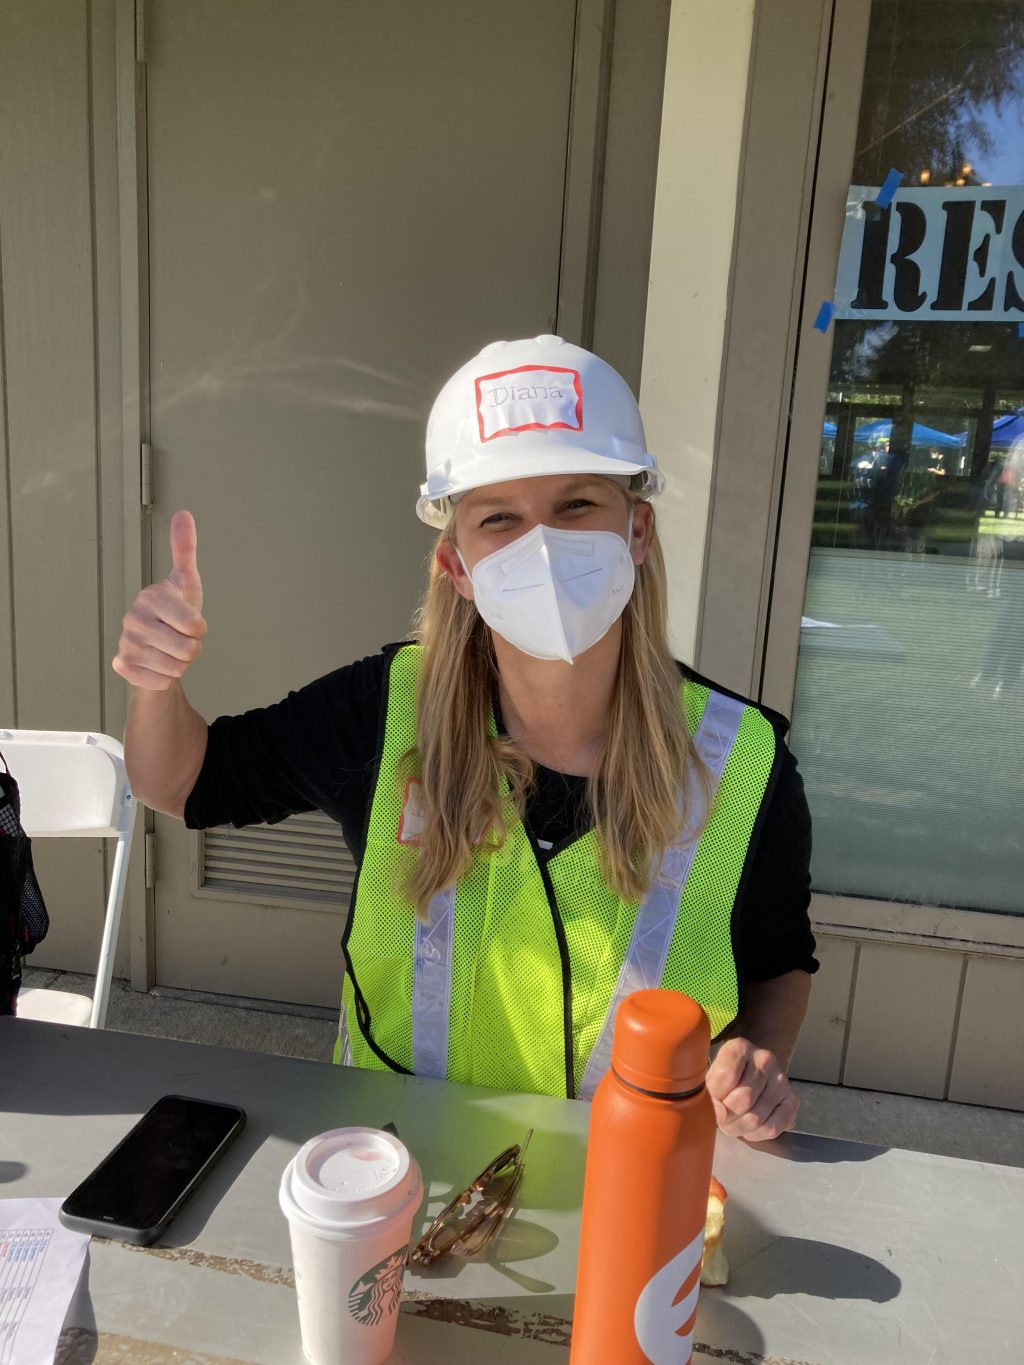 Diana Participated in an emergency readiness event for the city of Atherton